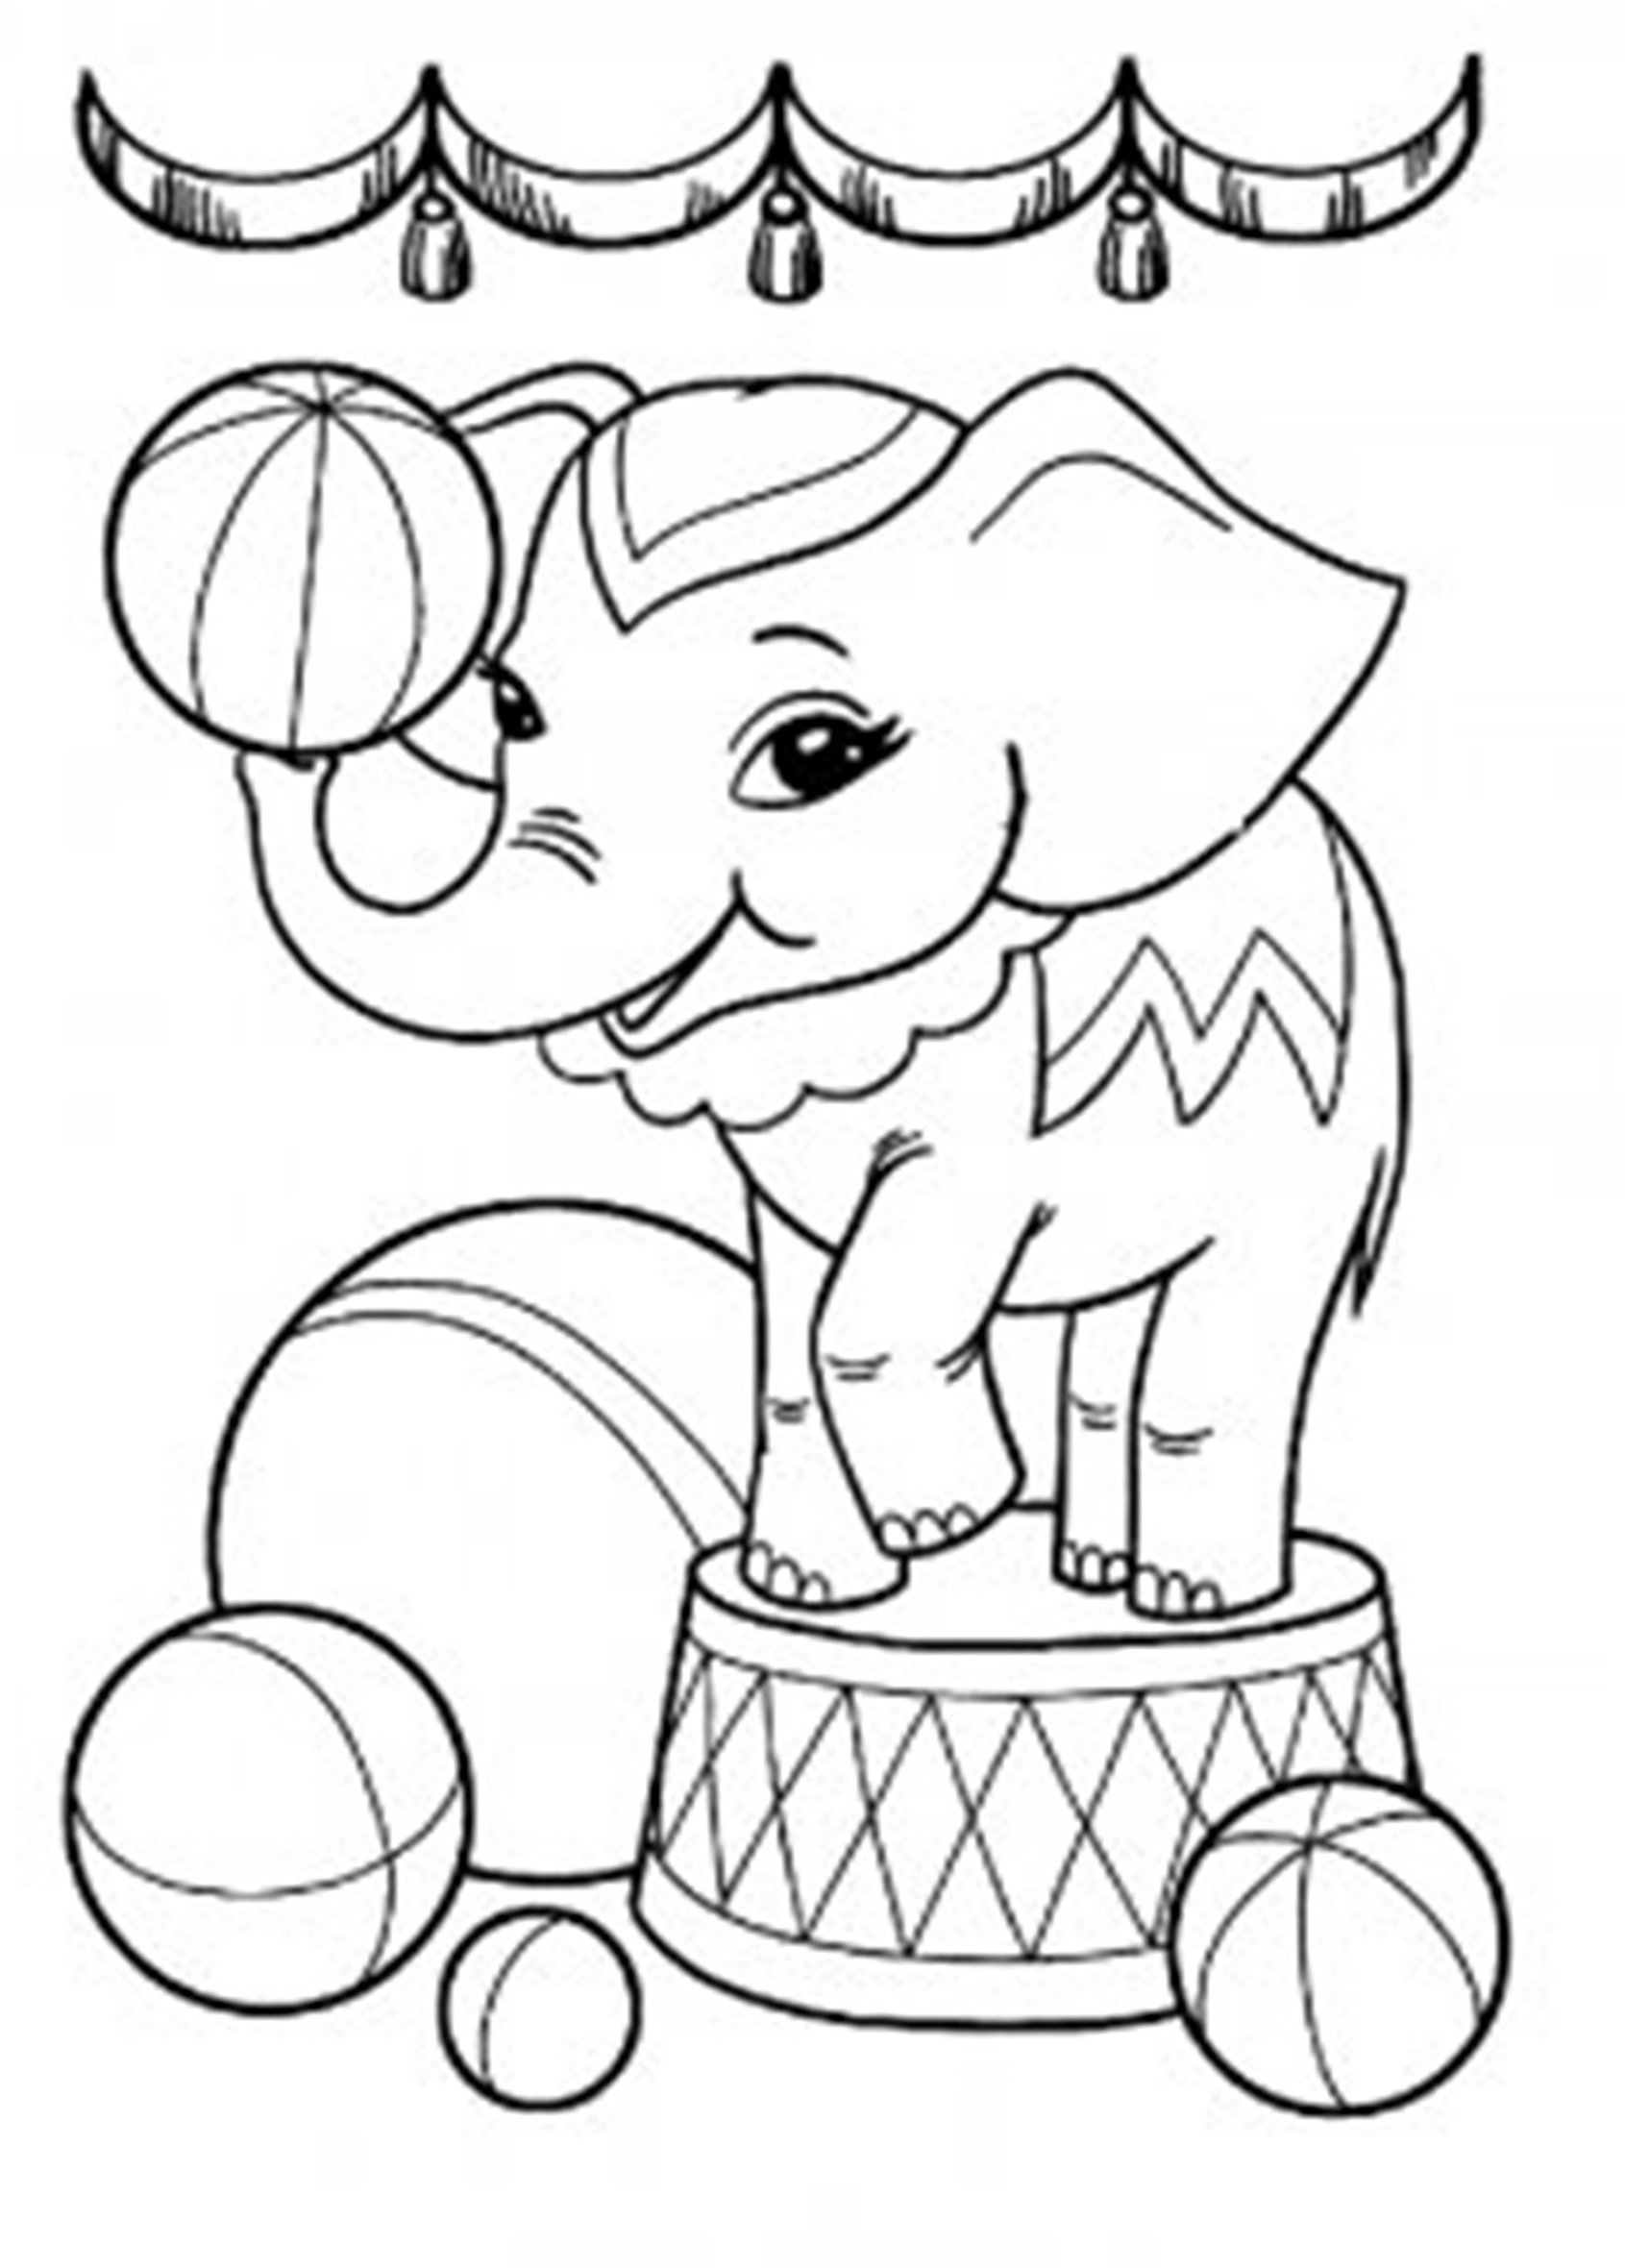 coloring book elephant images cute baby elephant coloring pages get coloring pages elephant images coloring book